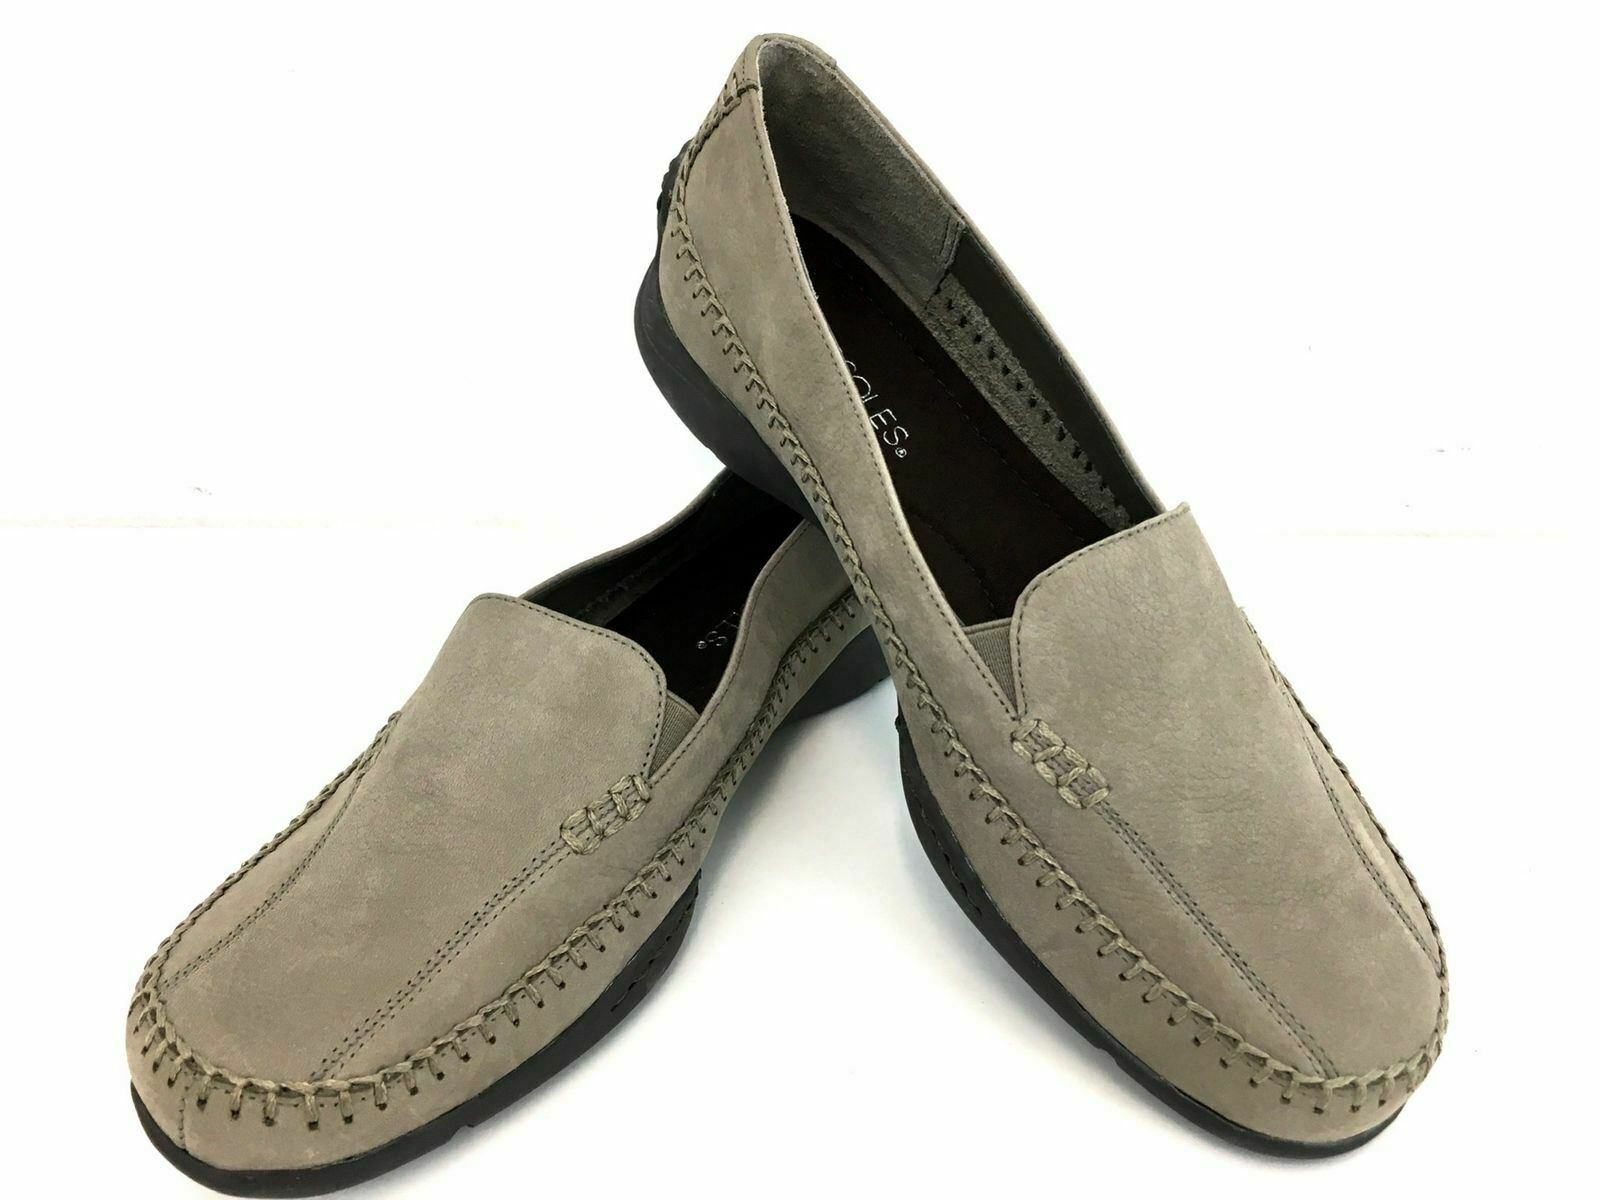 Aerosoles shoes 9 Taupe Women's Leather Stitch Detail Slip On Loafers